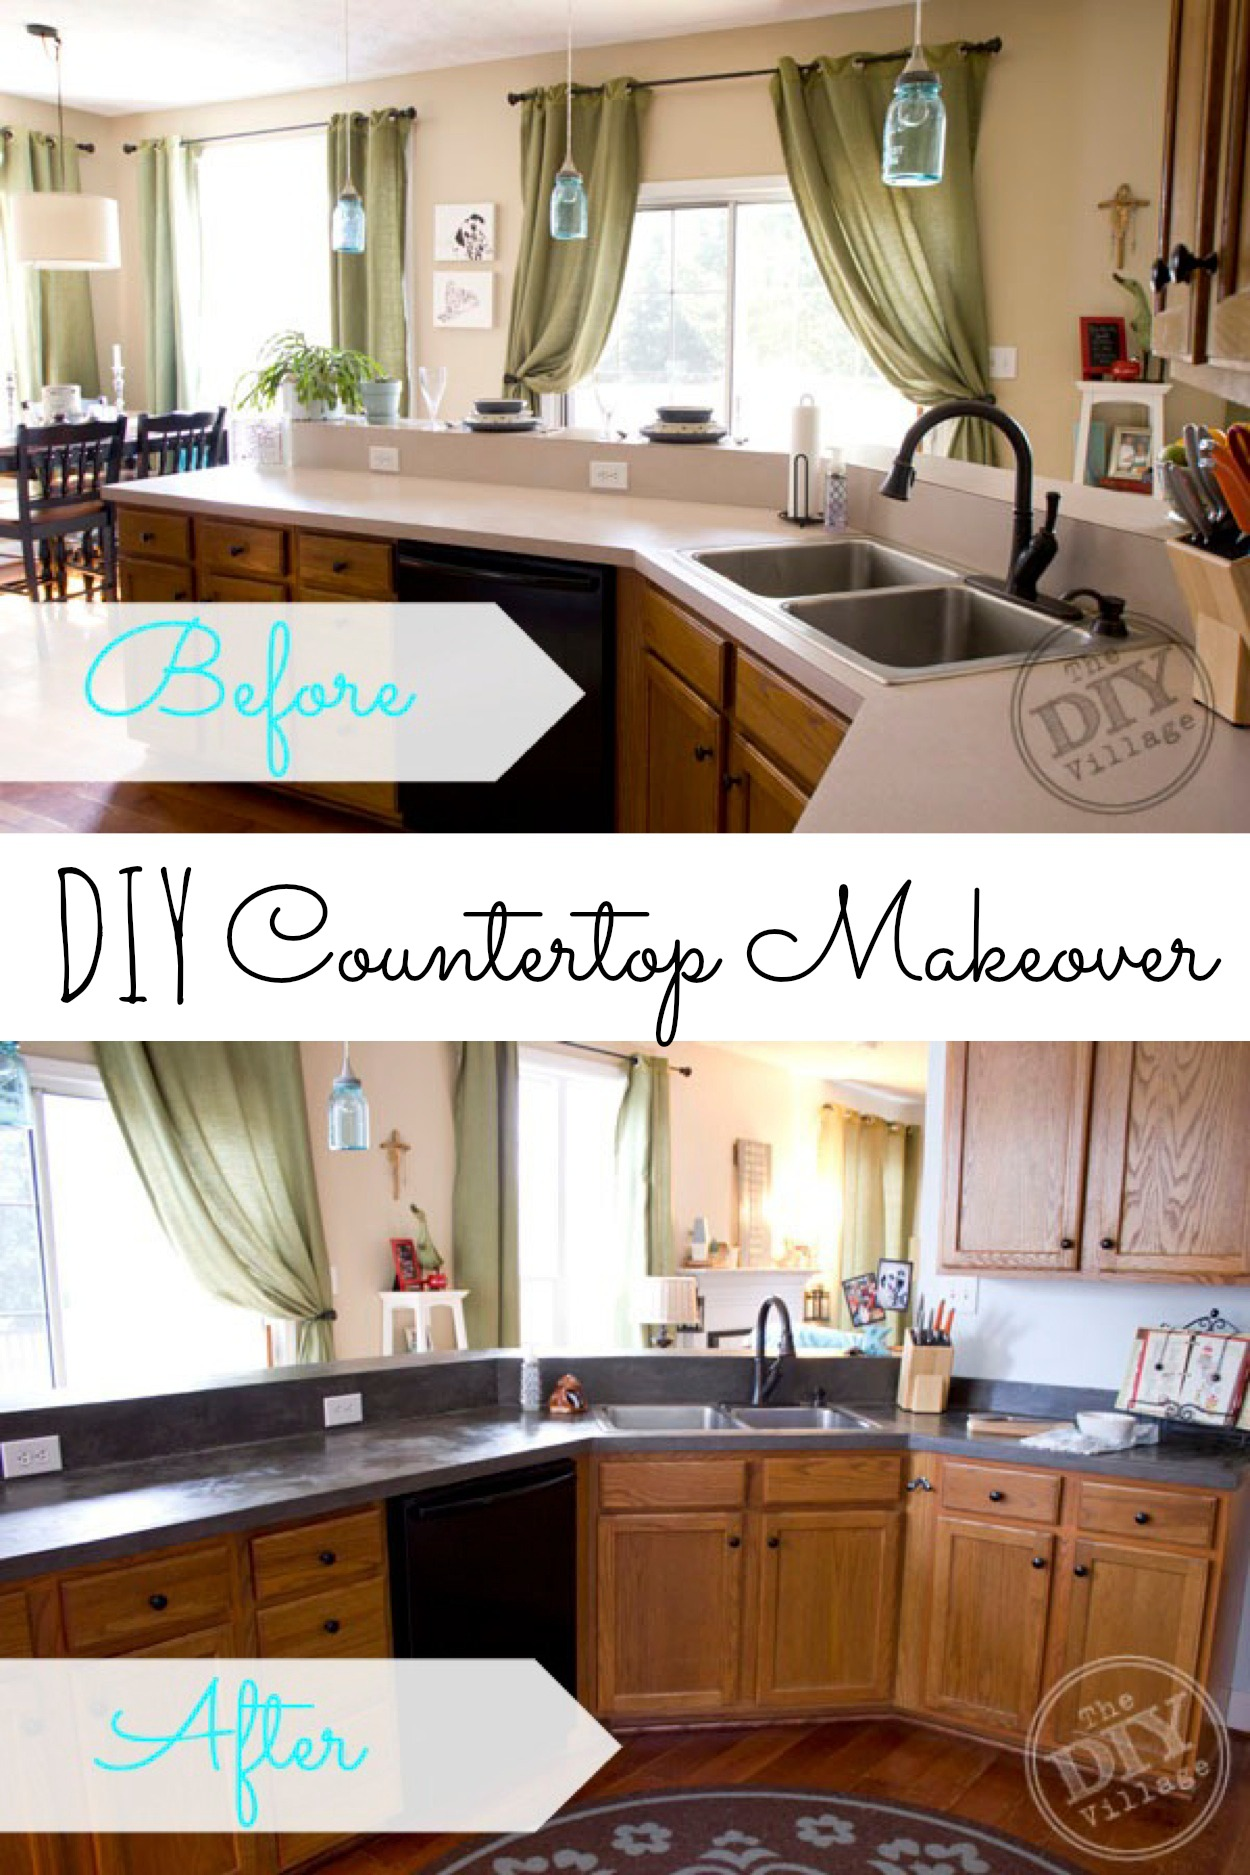 Kitchen Countertop Makeover